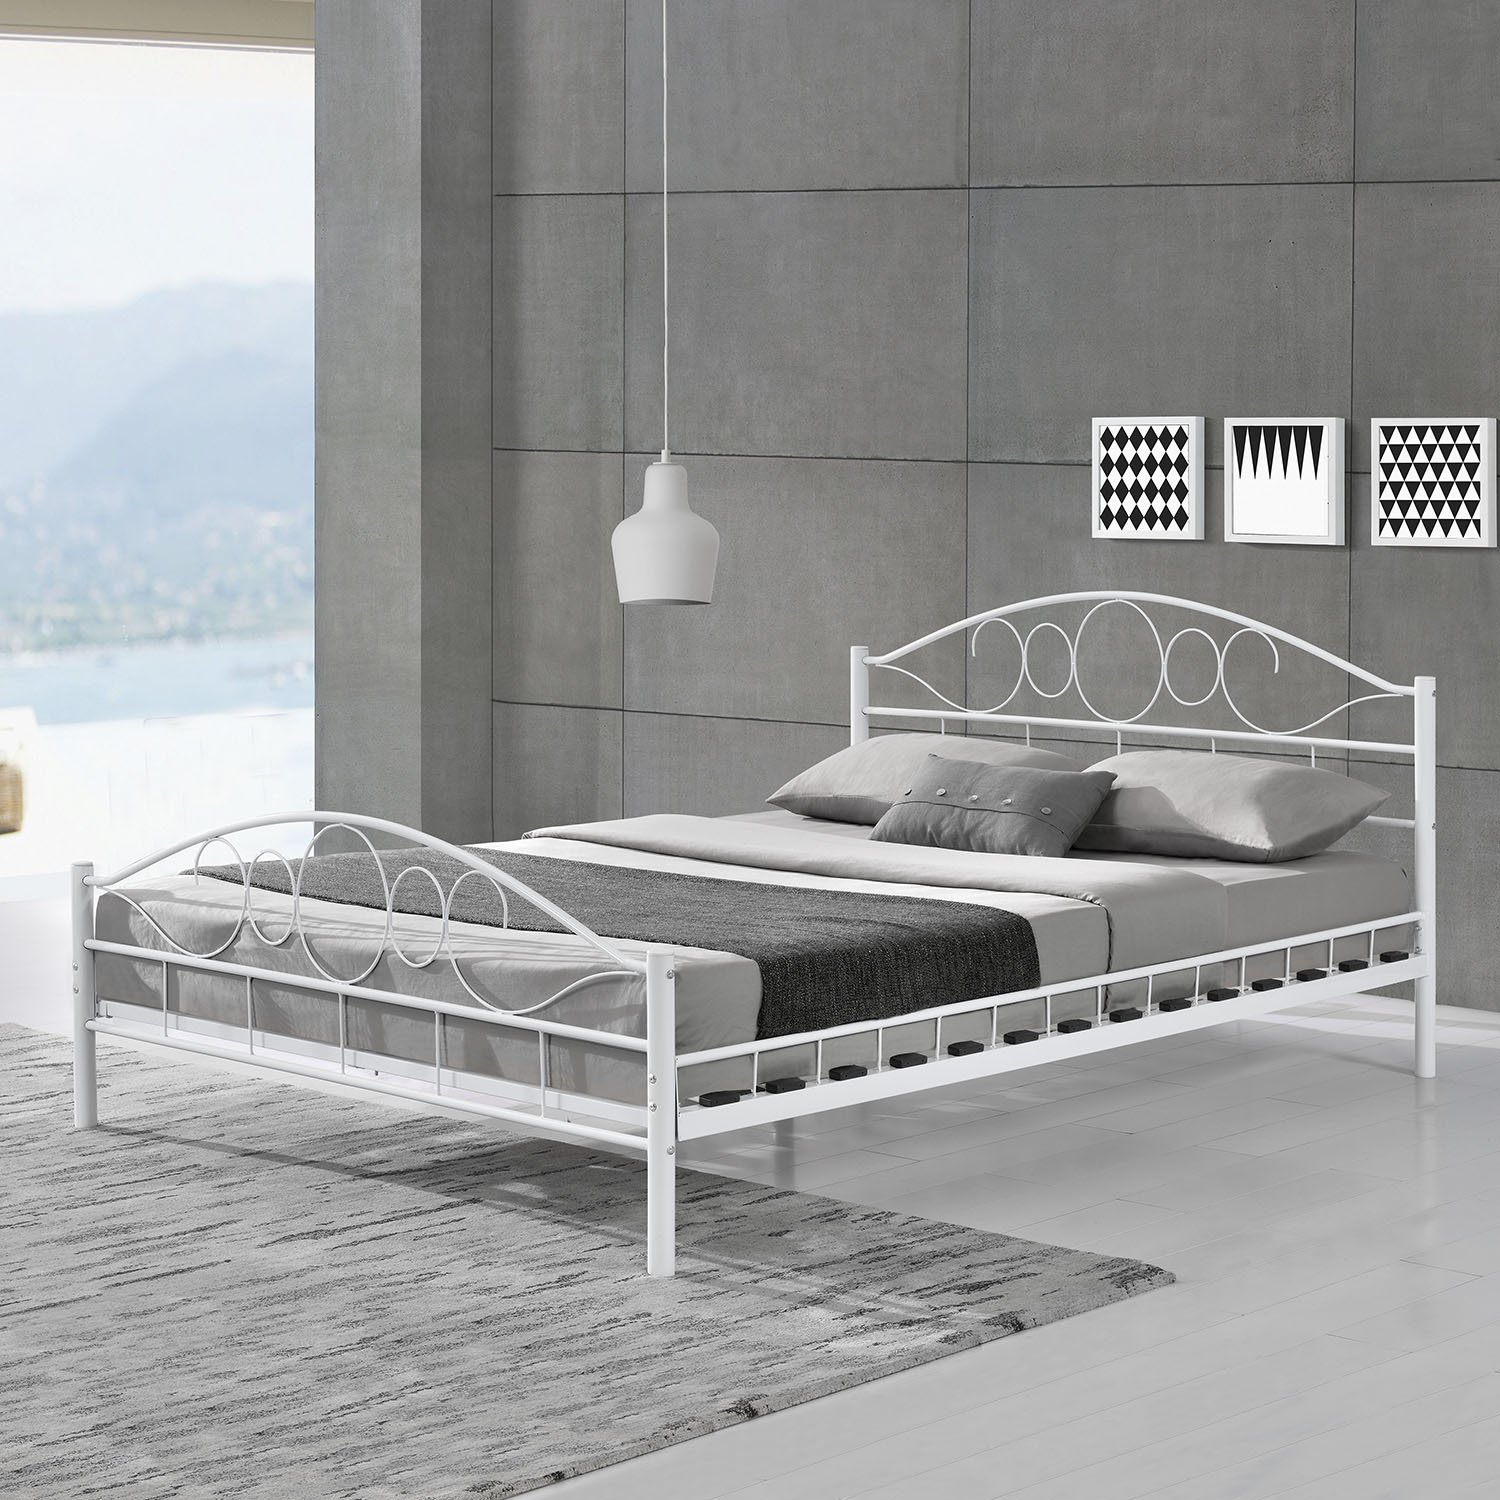 Metallbett 180x200 braun  Metallbetten | Amazon.de